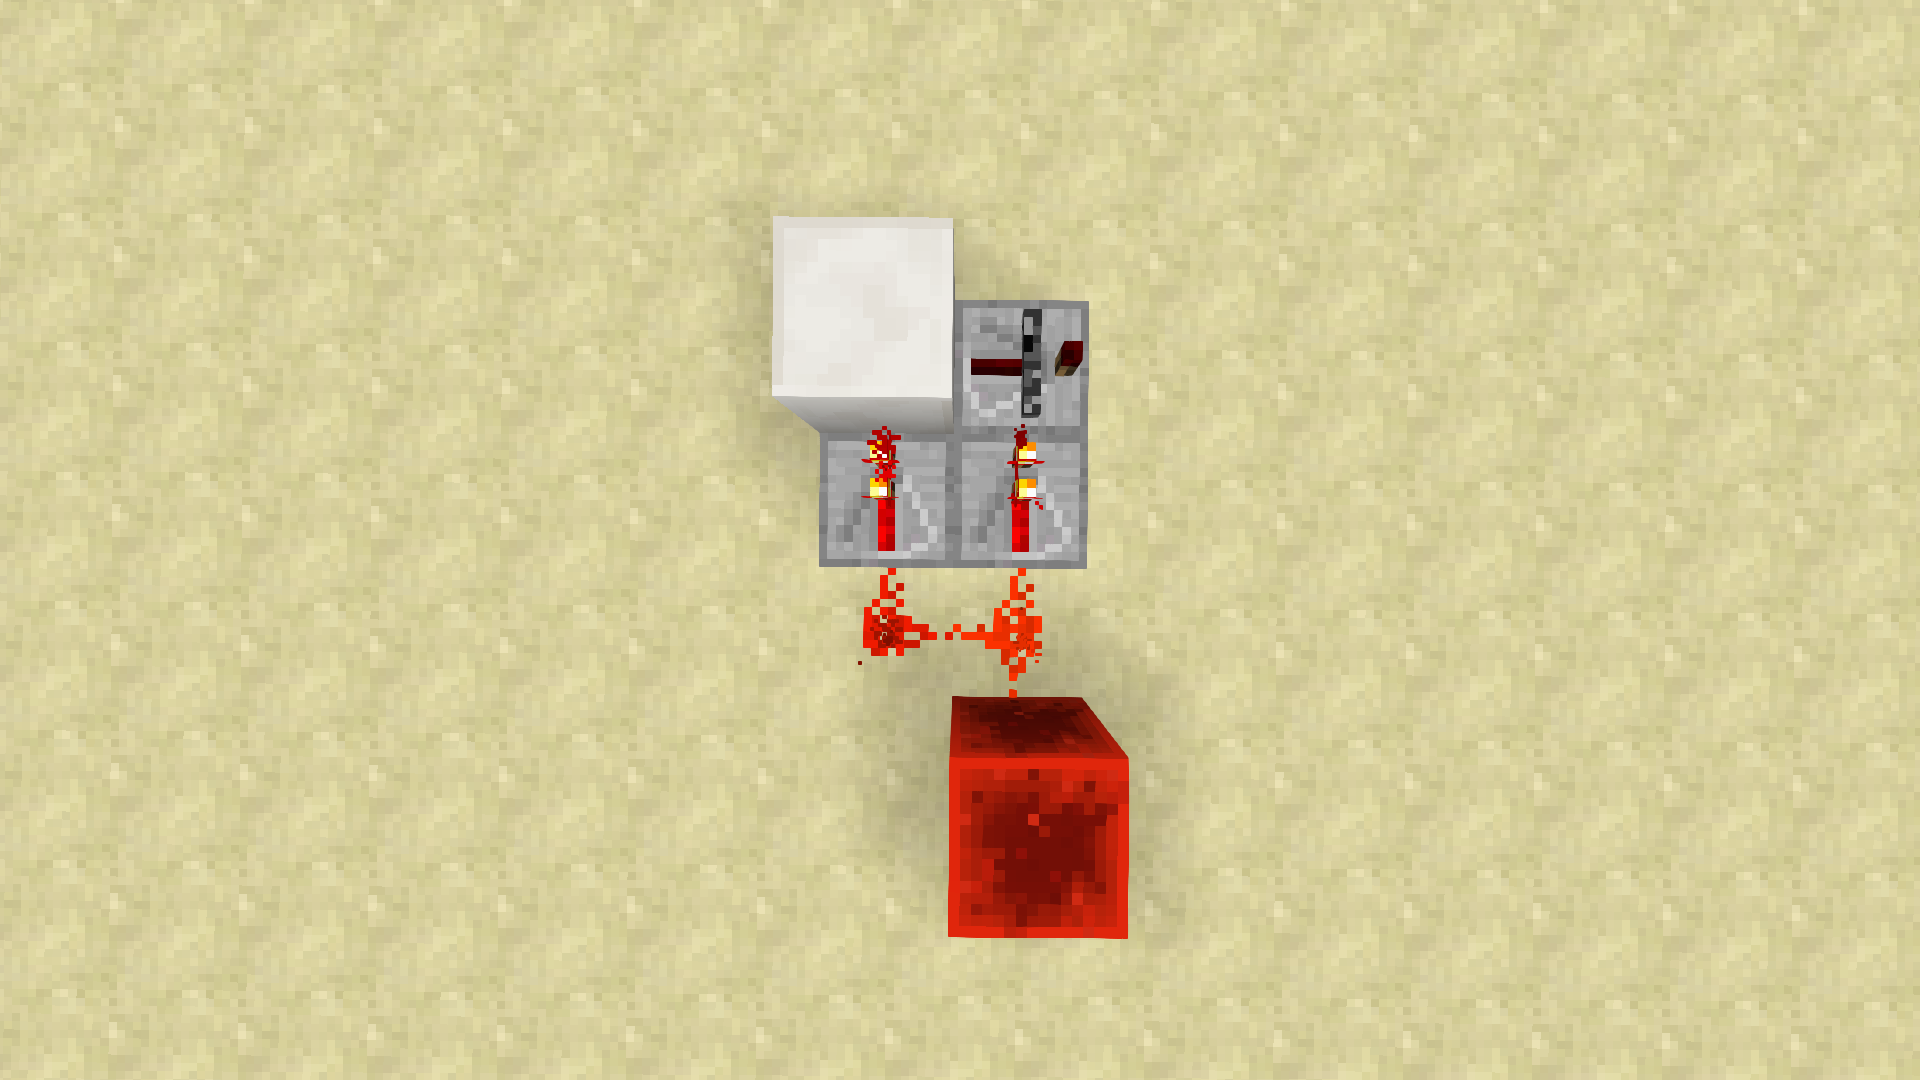 Redstone Repeater Technical Minecraft Wikia Fandom Powered By Monostable Circuit A Lock O Stable